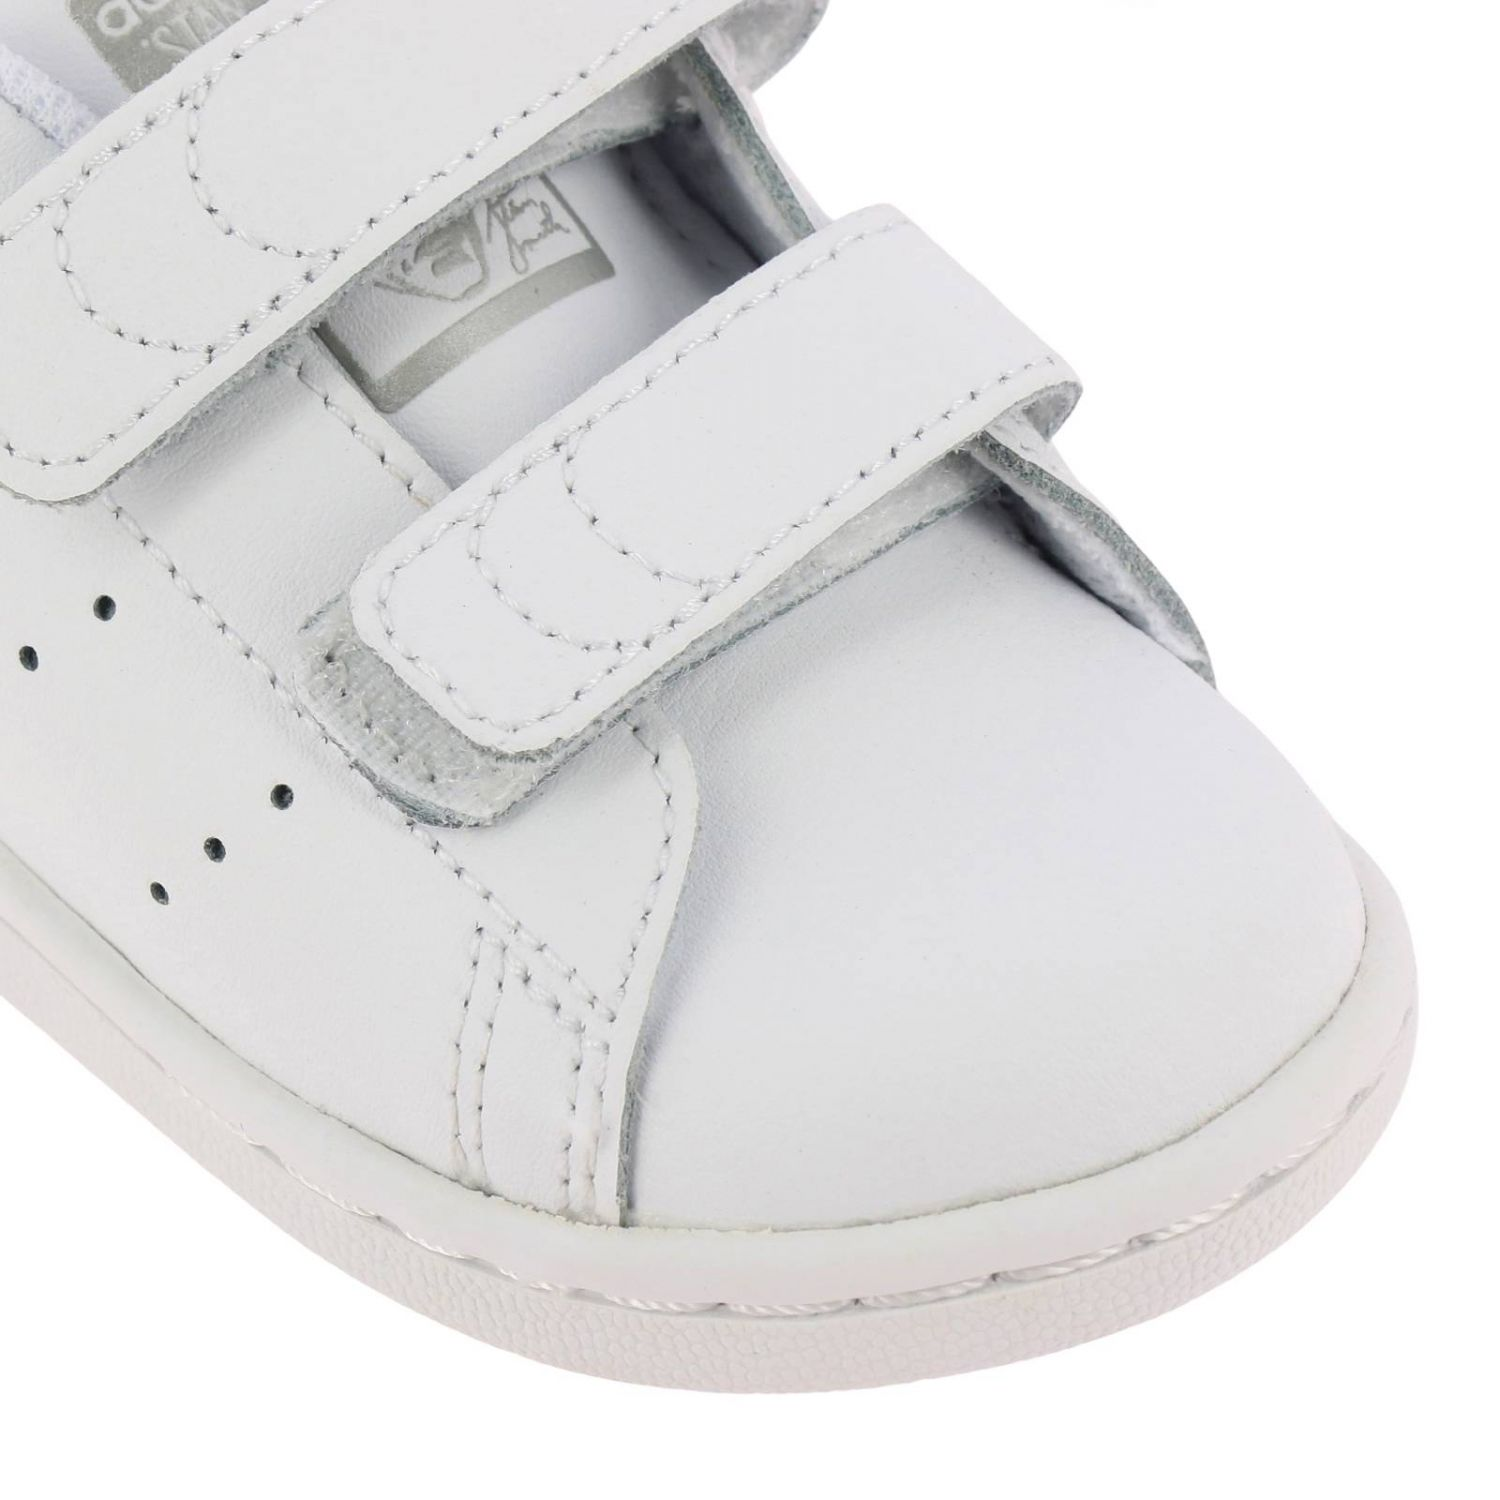 Shoes Adidas Originals: Stan Smith Adidas Originals Sneakers in smooth leather with mirrored heel white 3